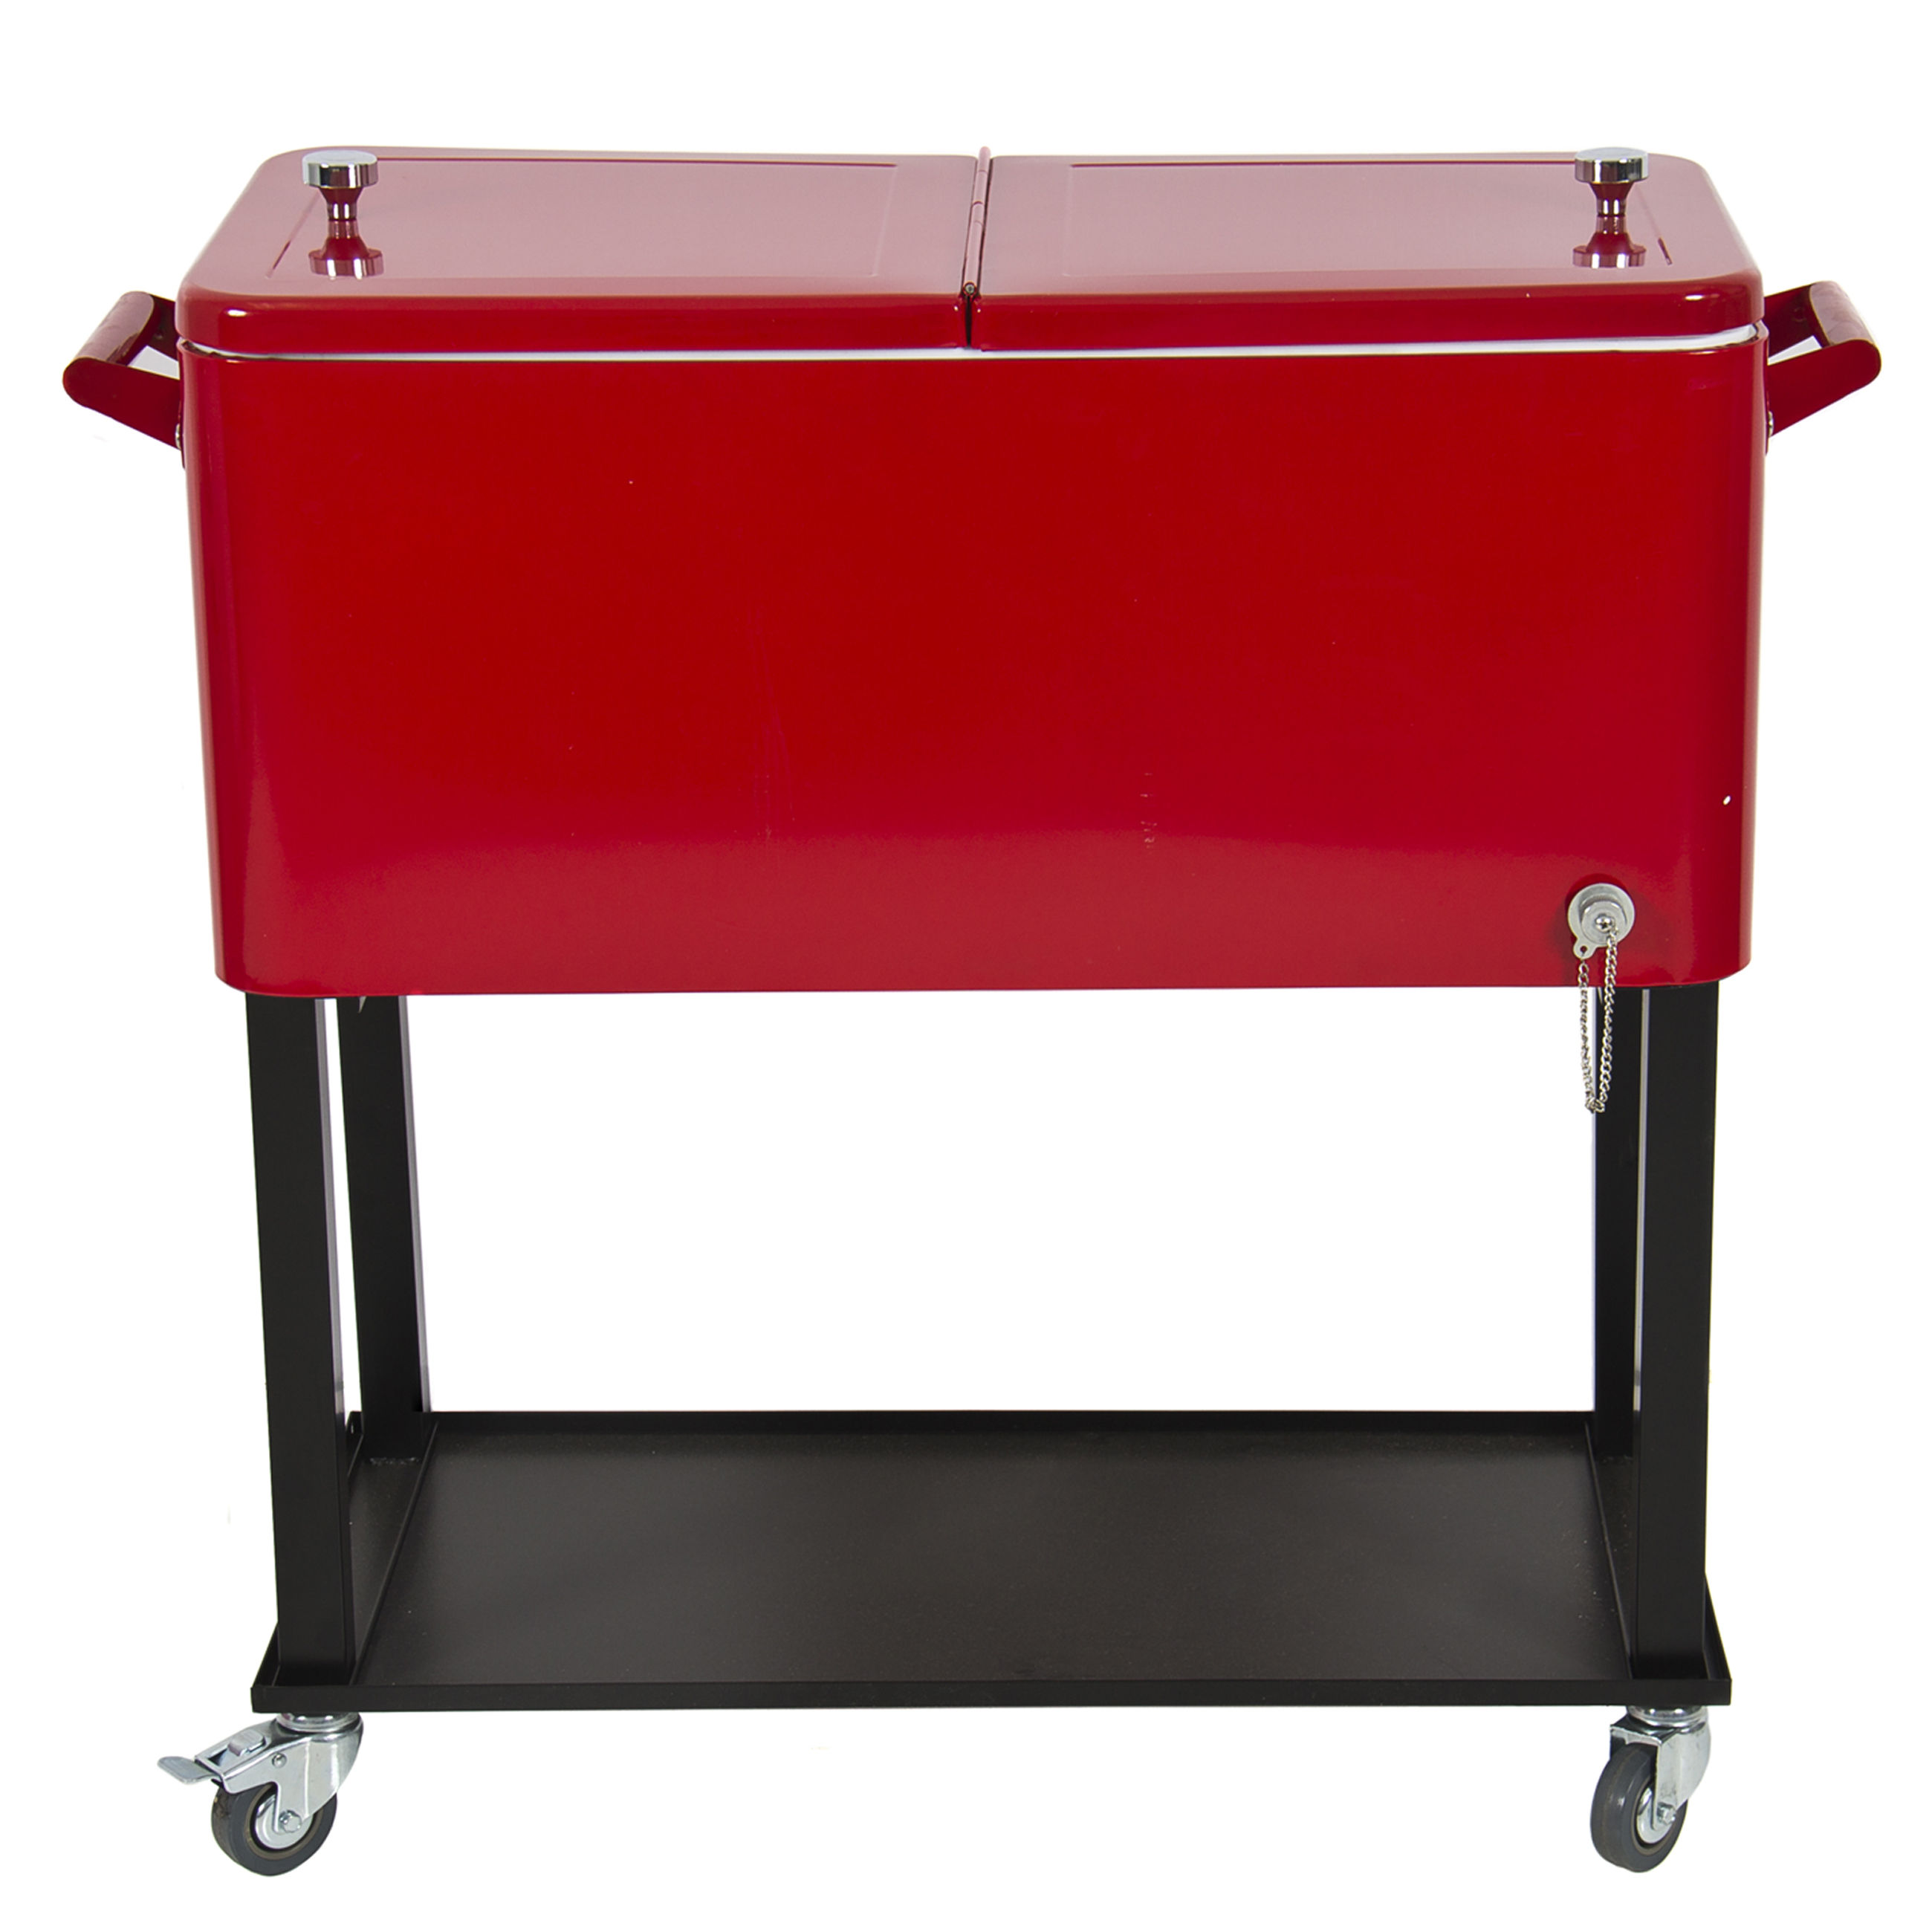 Great Patio Deck Cooler Rolling Outdoor 80 Quart Solid Steel Construction Home  Party   Walmart.com